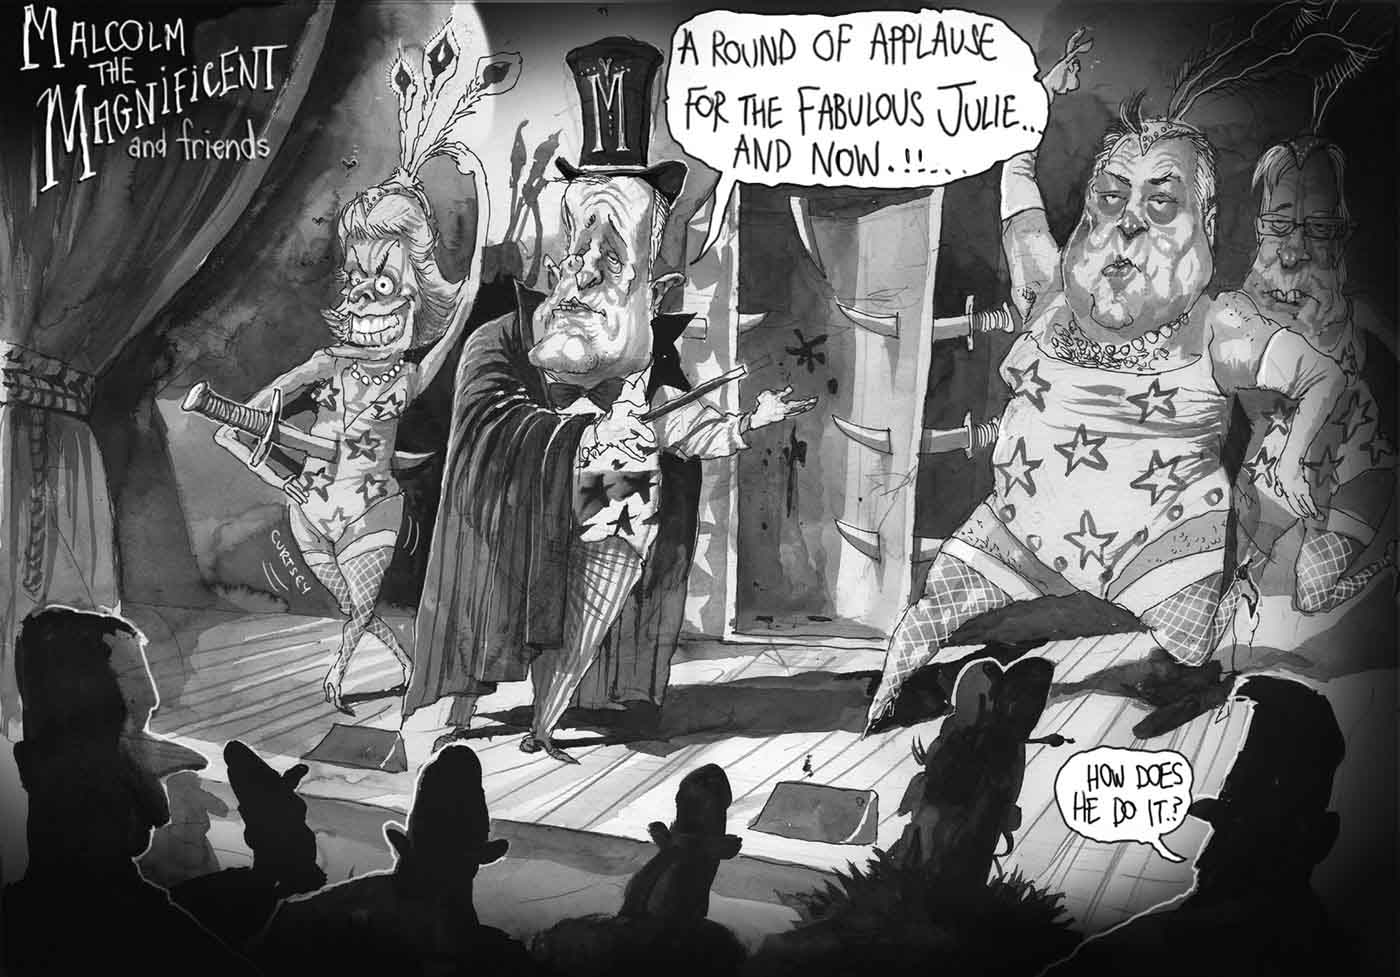 A black and white scene reminiscent of a magic act in a vaudeville show titled 'Malcolm the Magnificent and friends'. Four characters are on the stage facing an audience. Malcolm Turnbull is centre stage dressed in a top hat with a giant 'M', a magician's cape, a vest with stars and striped pants. He holds a wand in one hand and gestures to a human sized disappearing act box saying 'A round of applause for the fabulous Julie ... And ... now !!' The door is open and daggers pierce both sides. On the left of the cartoon is a grotesque female figure, representing Julie Bishop, dressed in a show girl costume including fishnets and a feather tiara. She has one hand above her head, the other on her hip. She has an enormous dagger running through her belly and sticking out her back. The third character, on the right, is a very chubby Joe Hockey, dressed in swimsuit drag with fishnet stockings, necklace and tiara. One long-gloved arm is thrown up above his head, the other held akimbo. A fourth charcter is behind Joe Hockey. At the front of the cartoon the back of the heads of the front row of the audience is in silhouette with one person saying 'How does he do it?' - click to view larger image